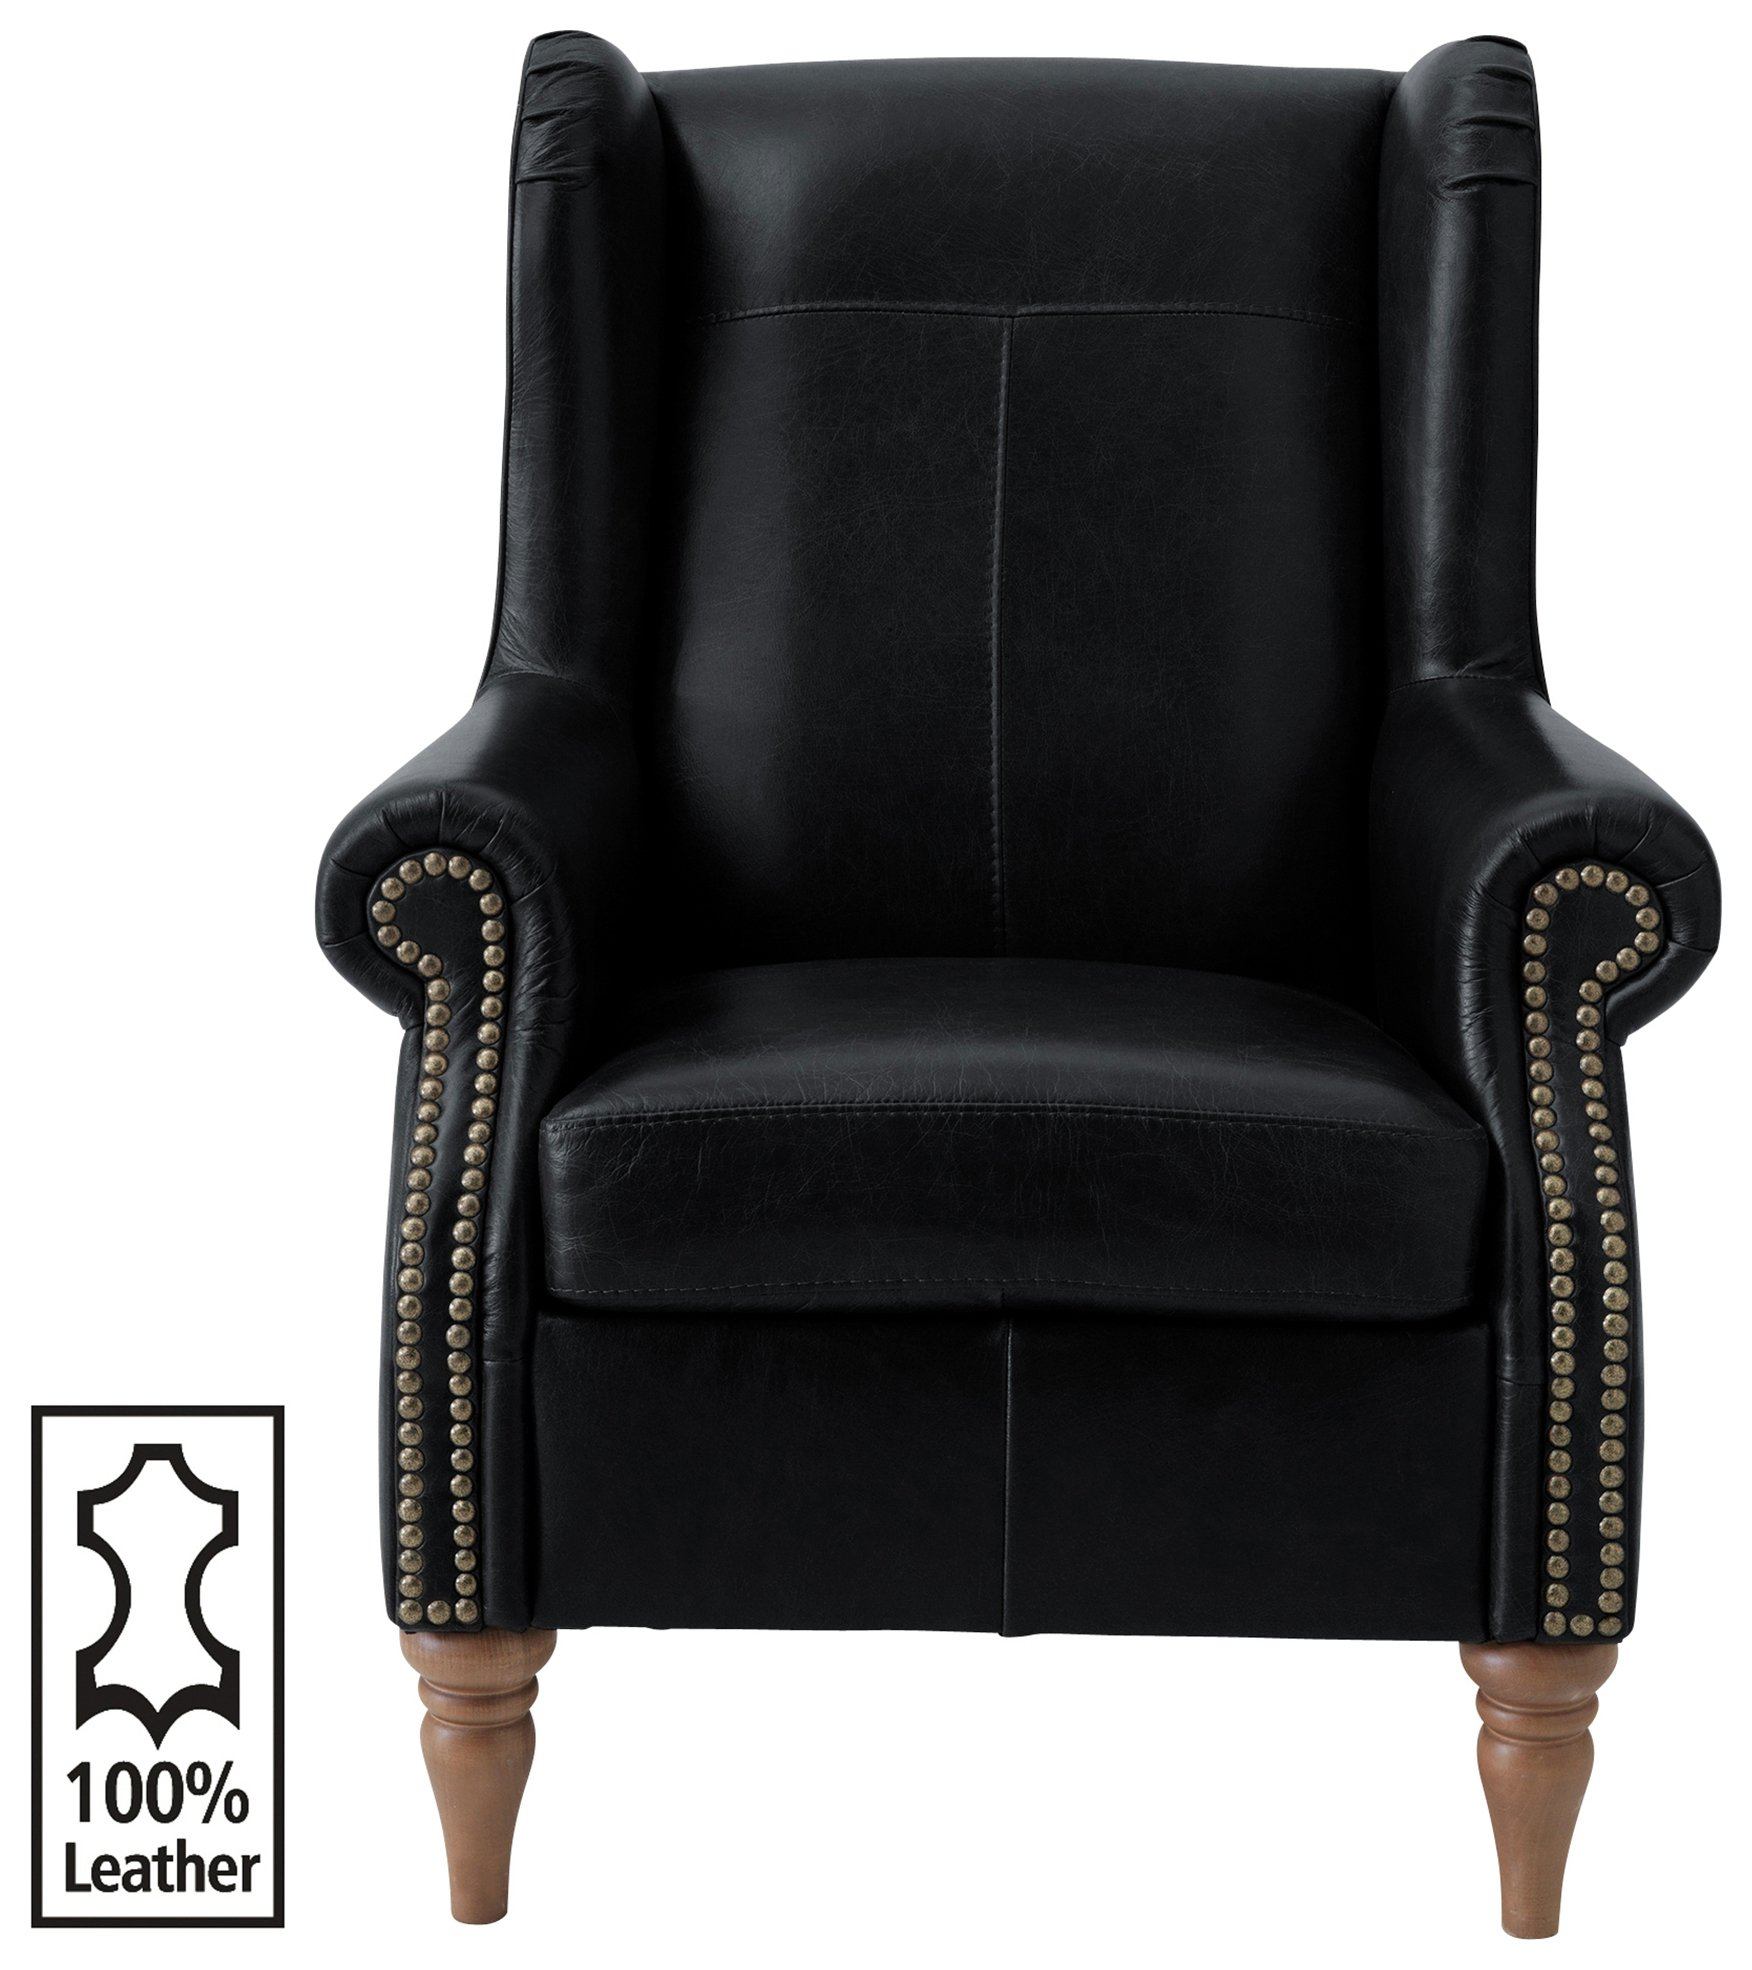 Argos Home Argyll Studded Leather High Back Chair - Black